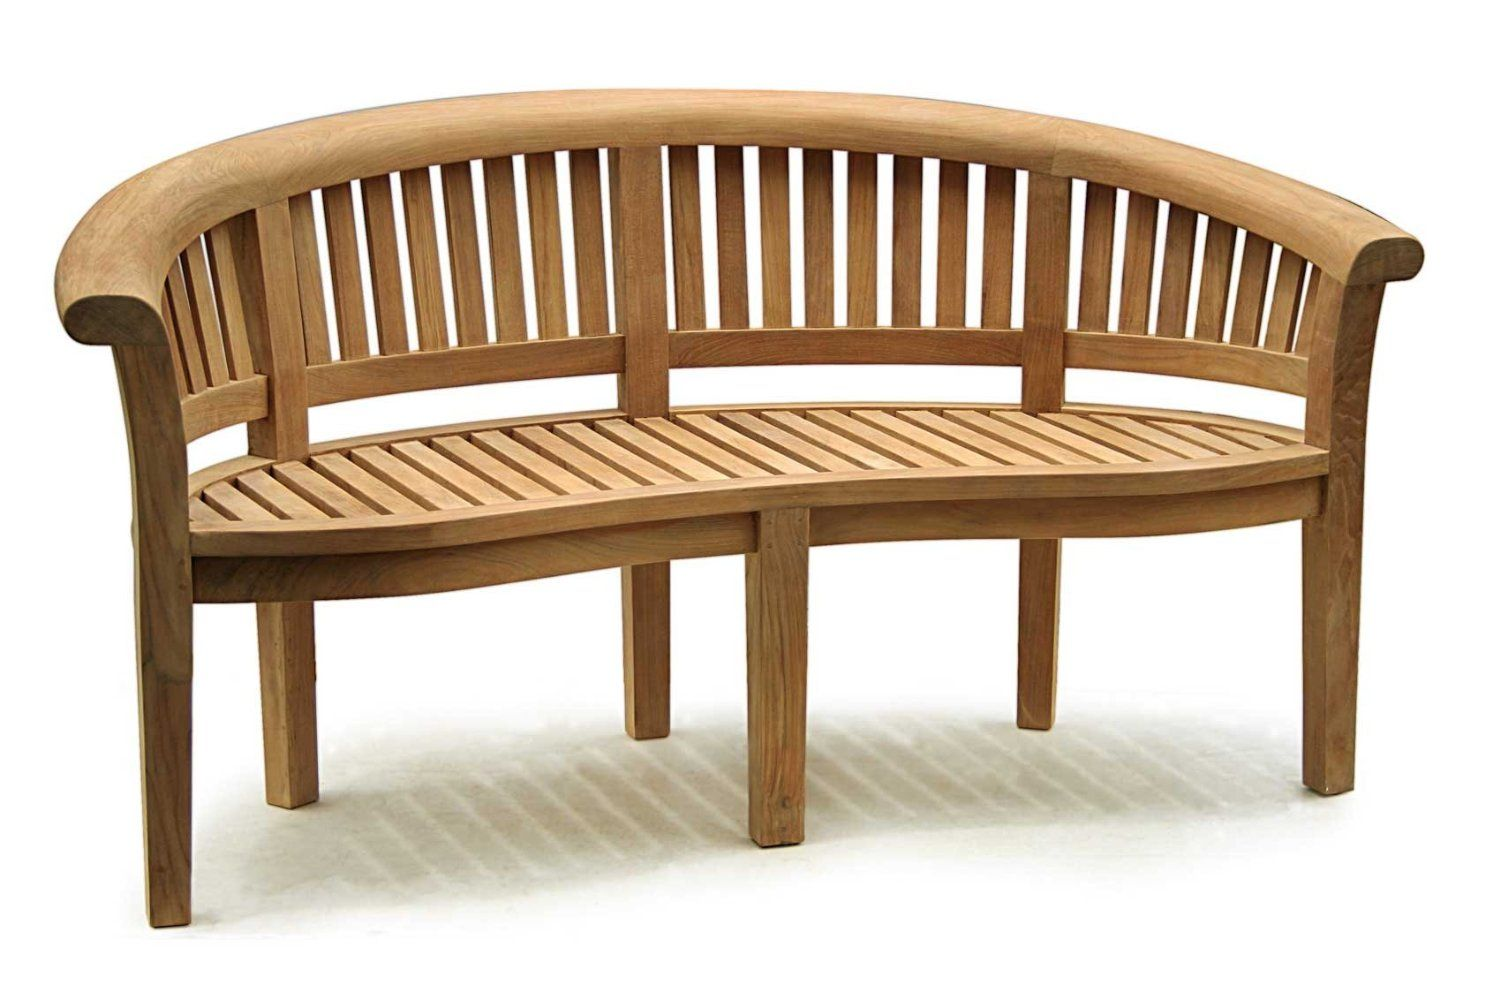 Interesting Decorative Modern Outdoor Bench Wooden: 24 Adorable .